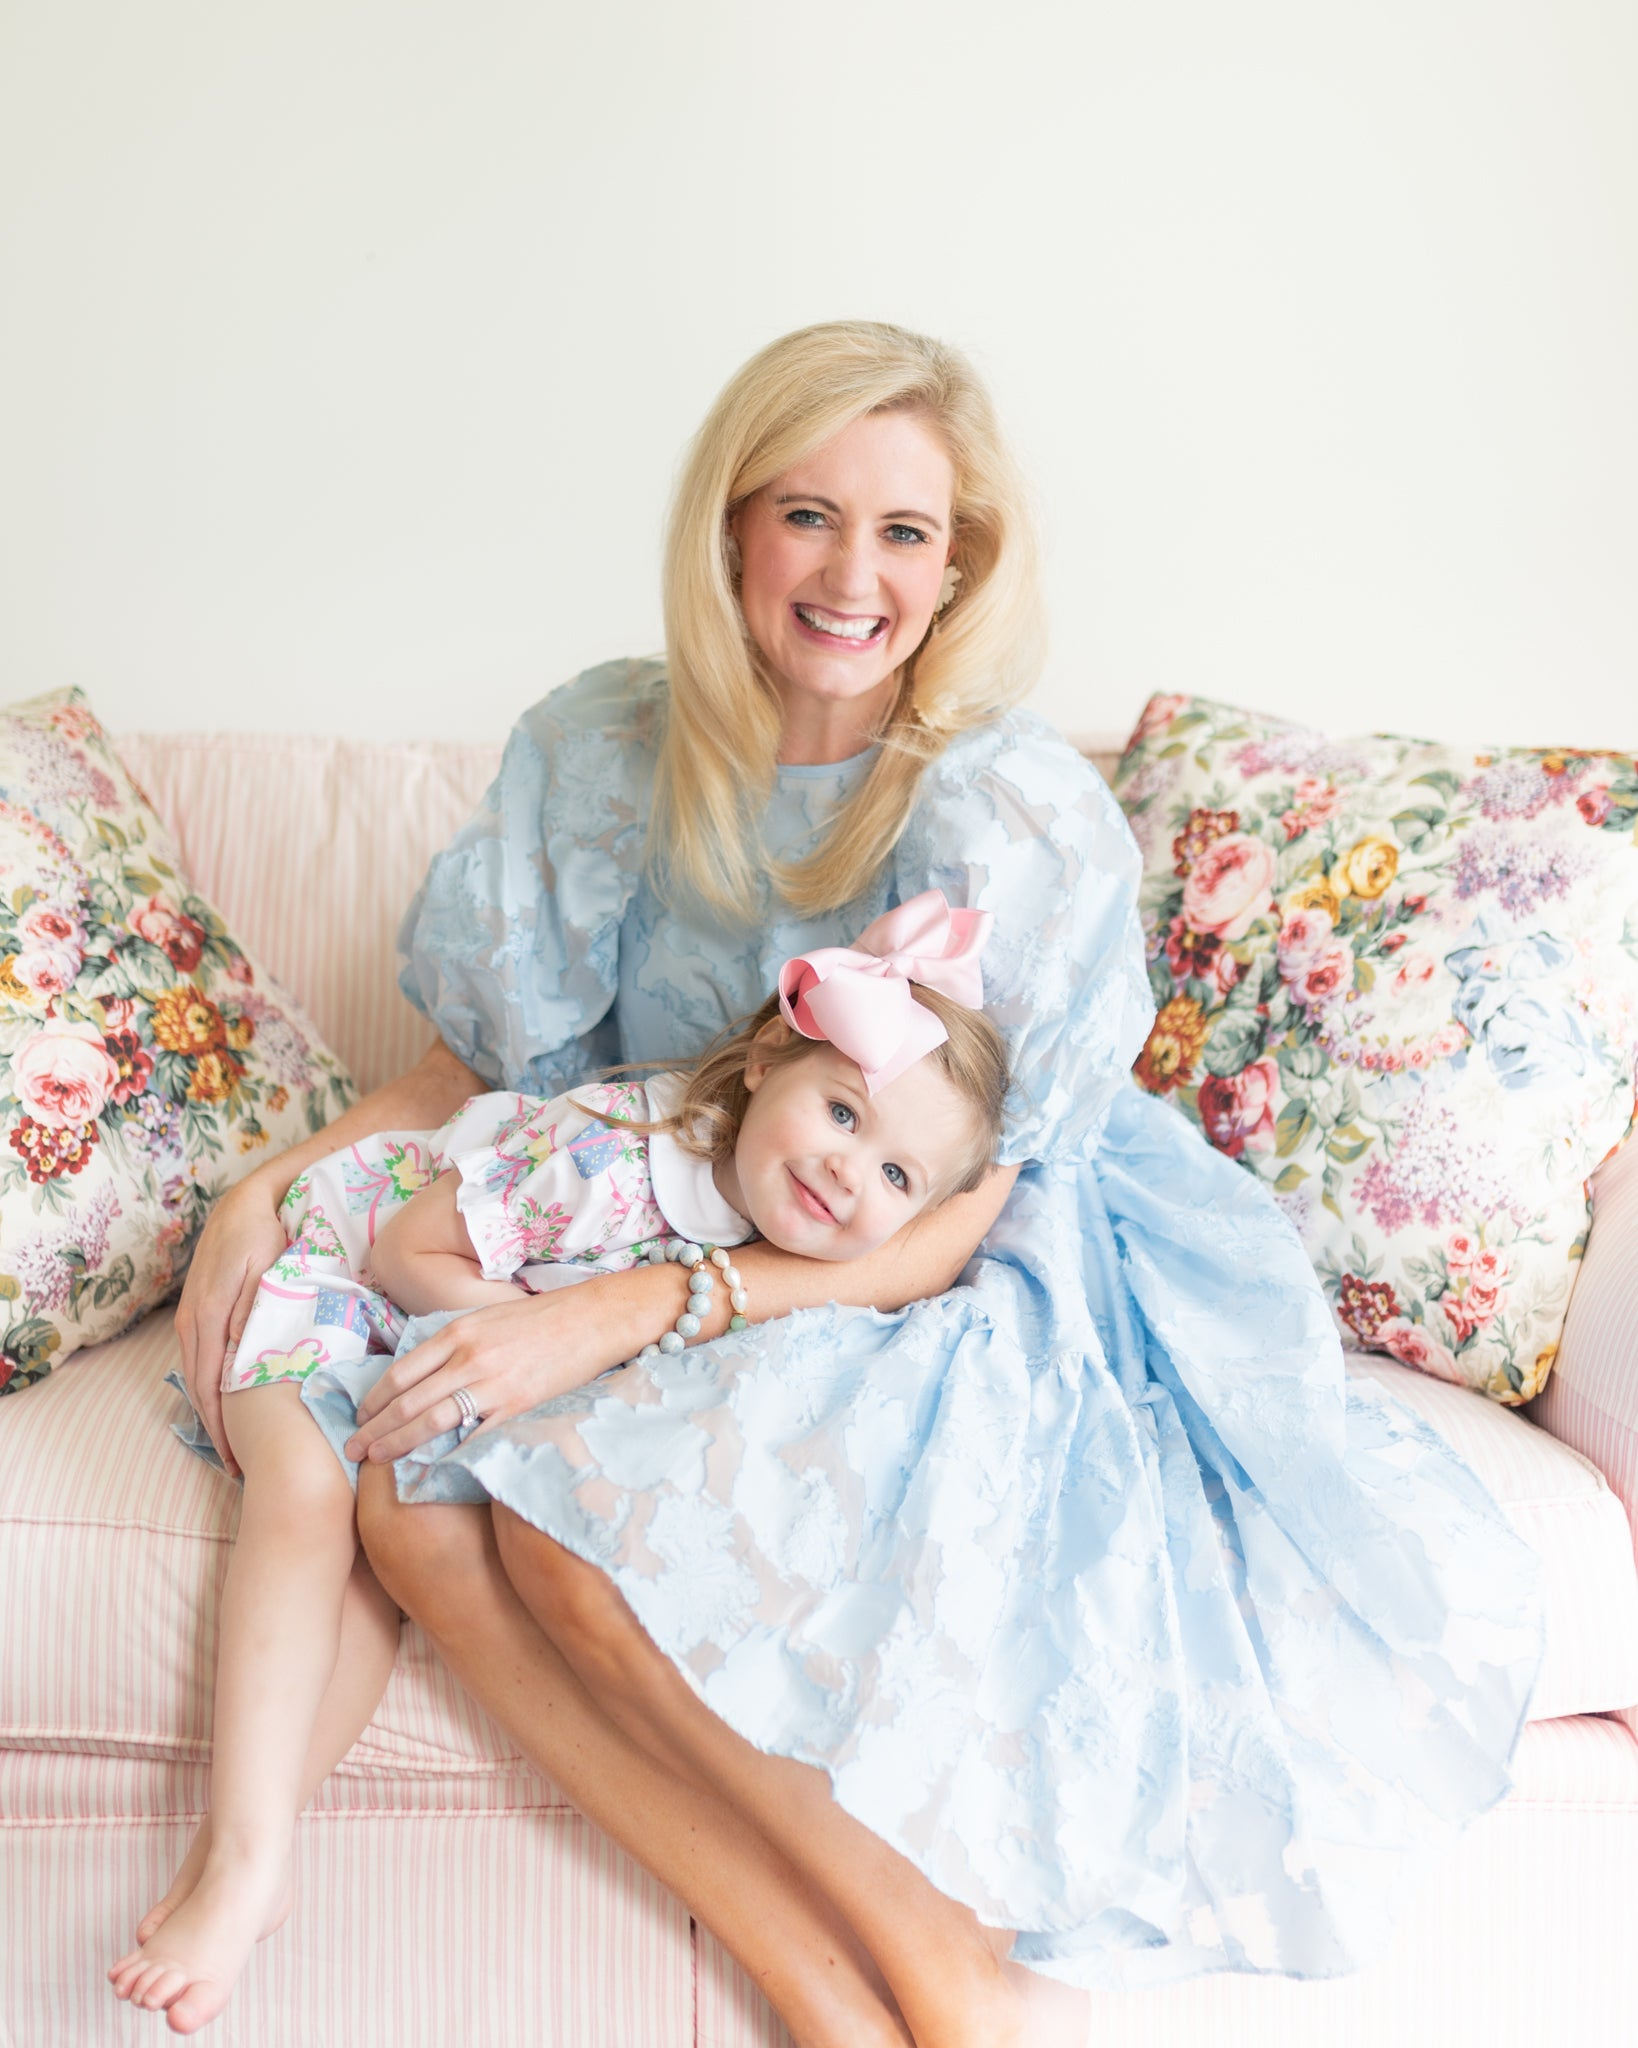 The Brooke Brooke - Mother and daughter - Celebrating childhood - Charlotte sy Dimby